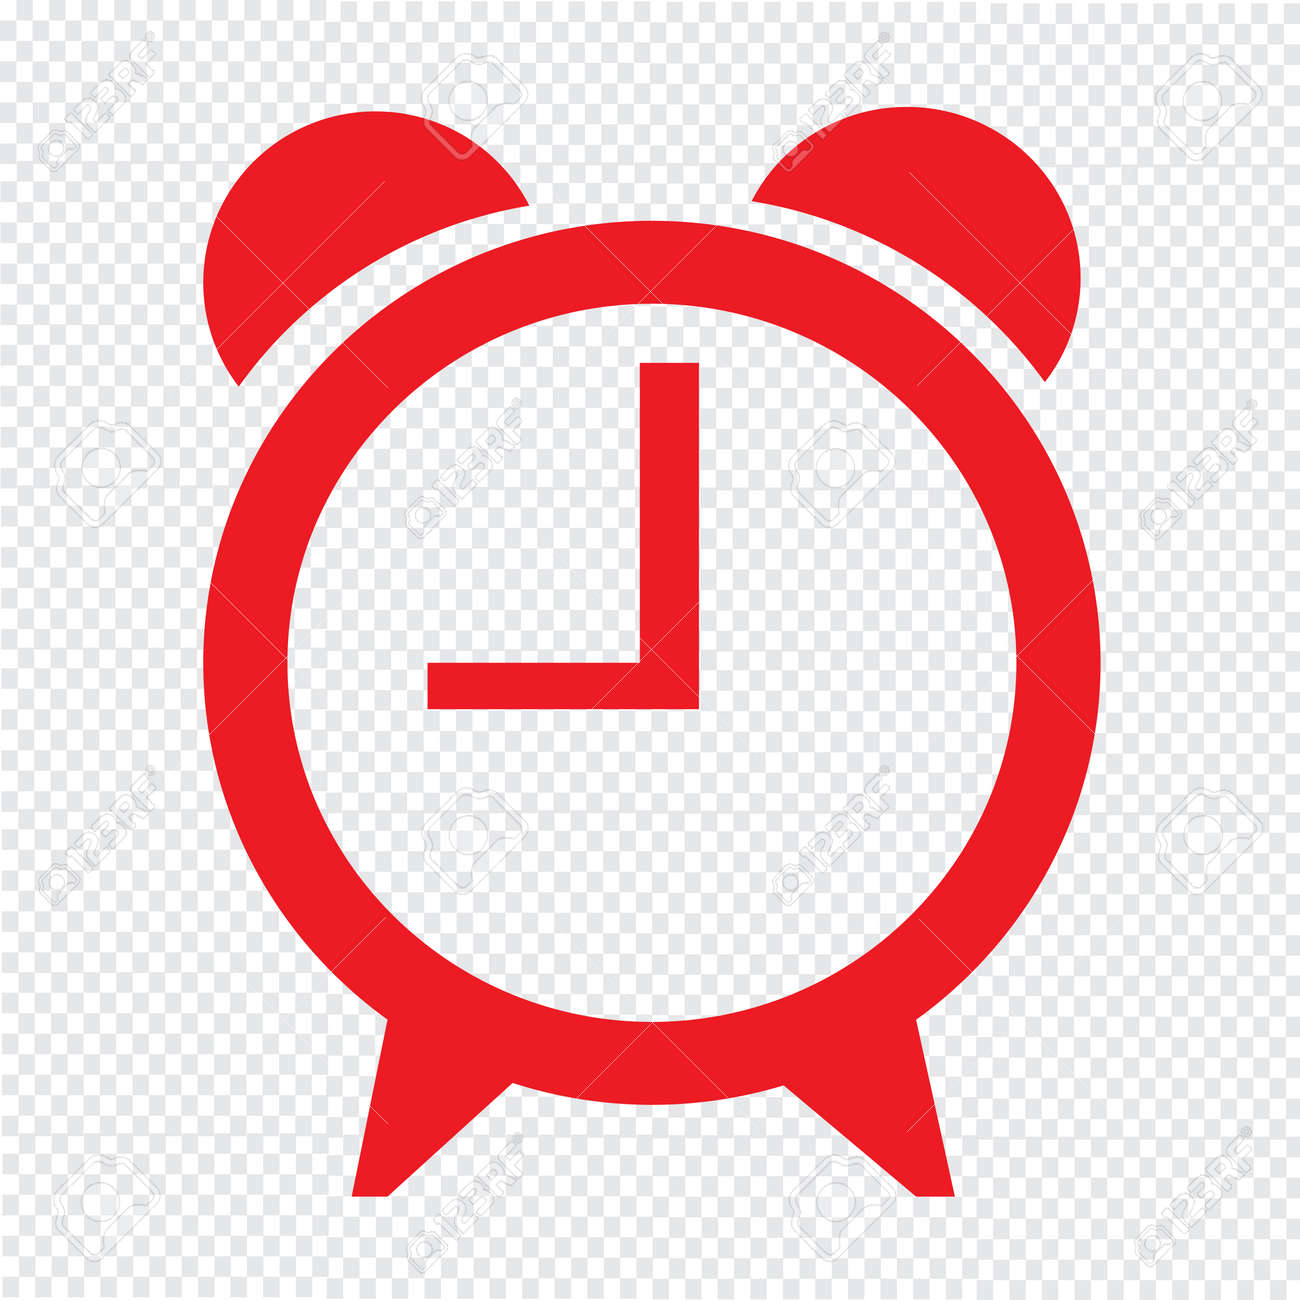 time clock icon illustration sign design royalty free cliparts